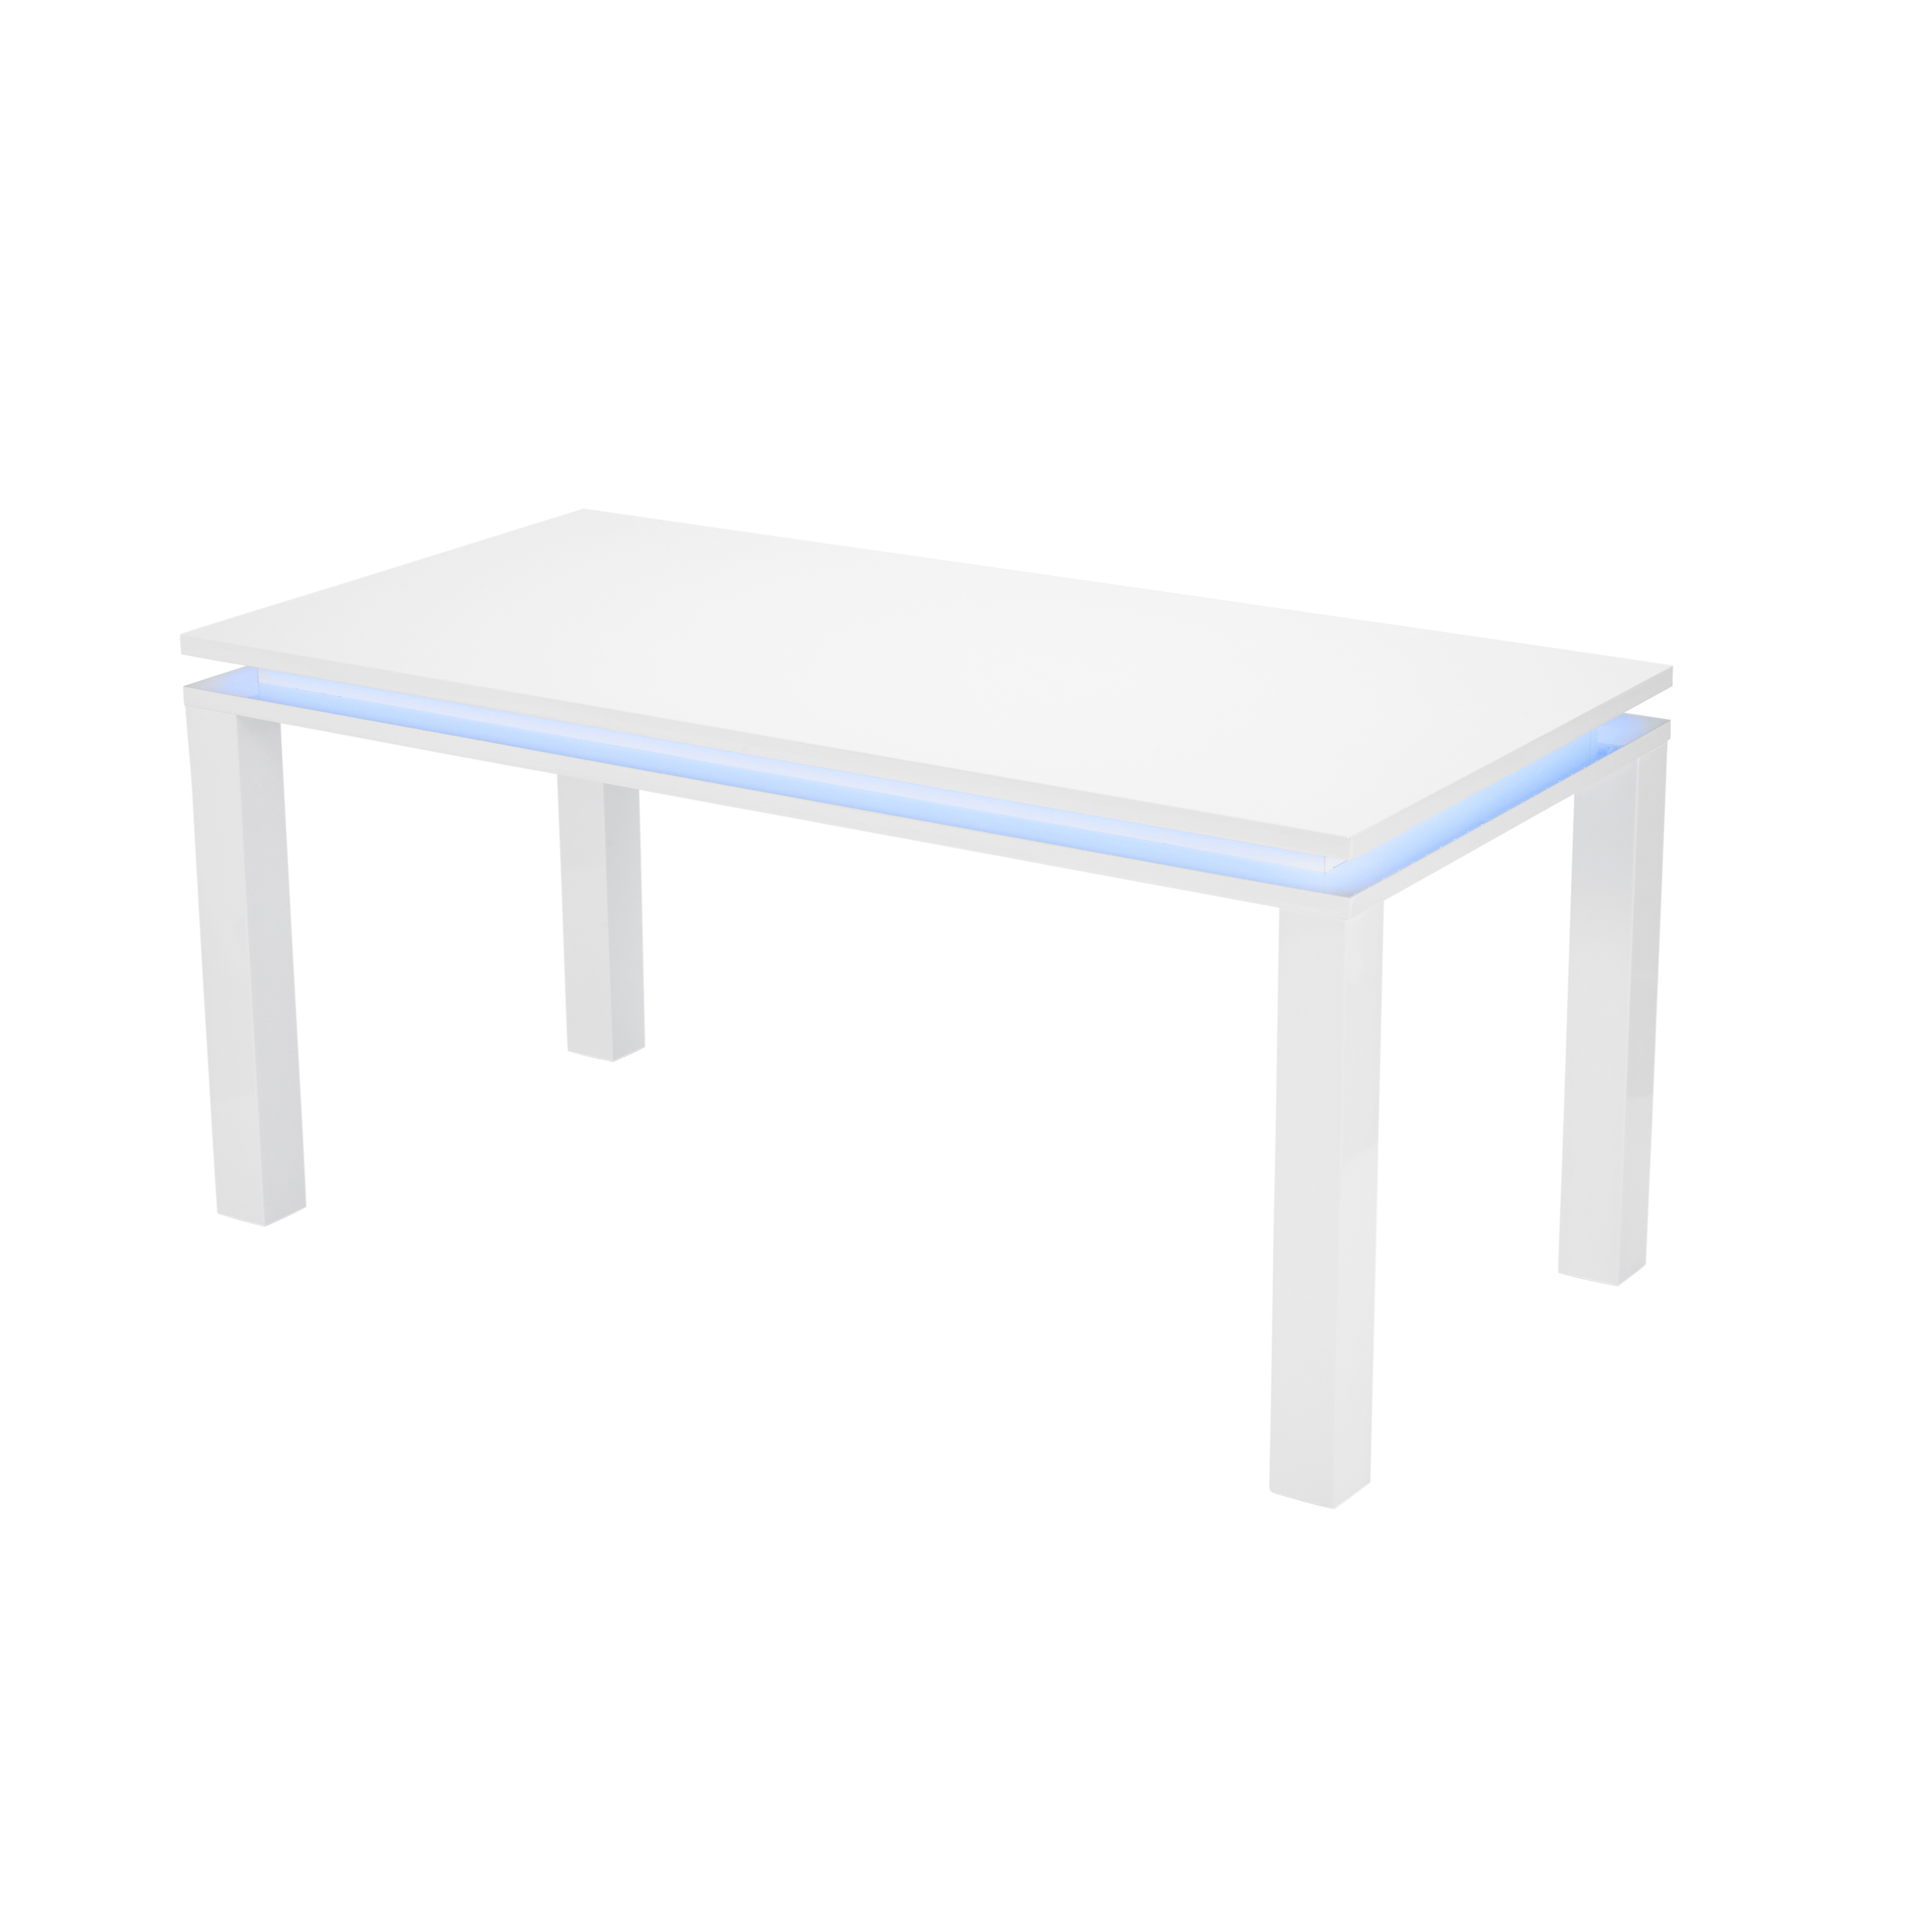 MILANO DINING TABLE.